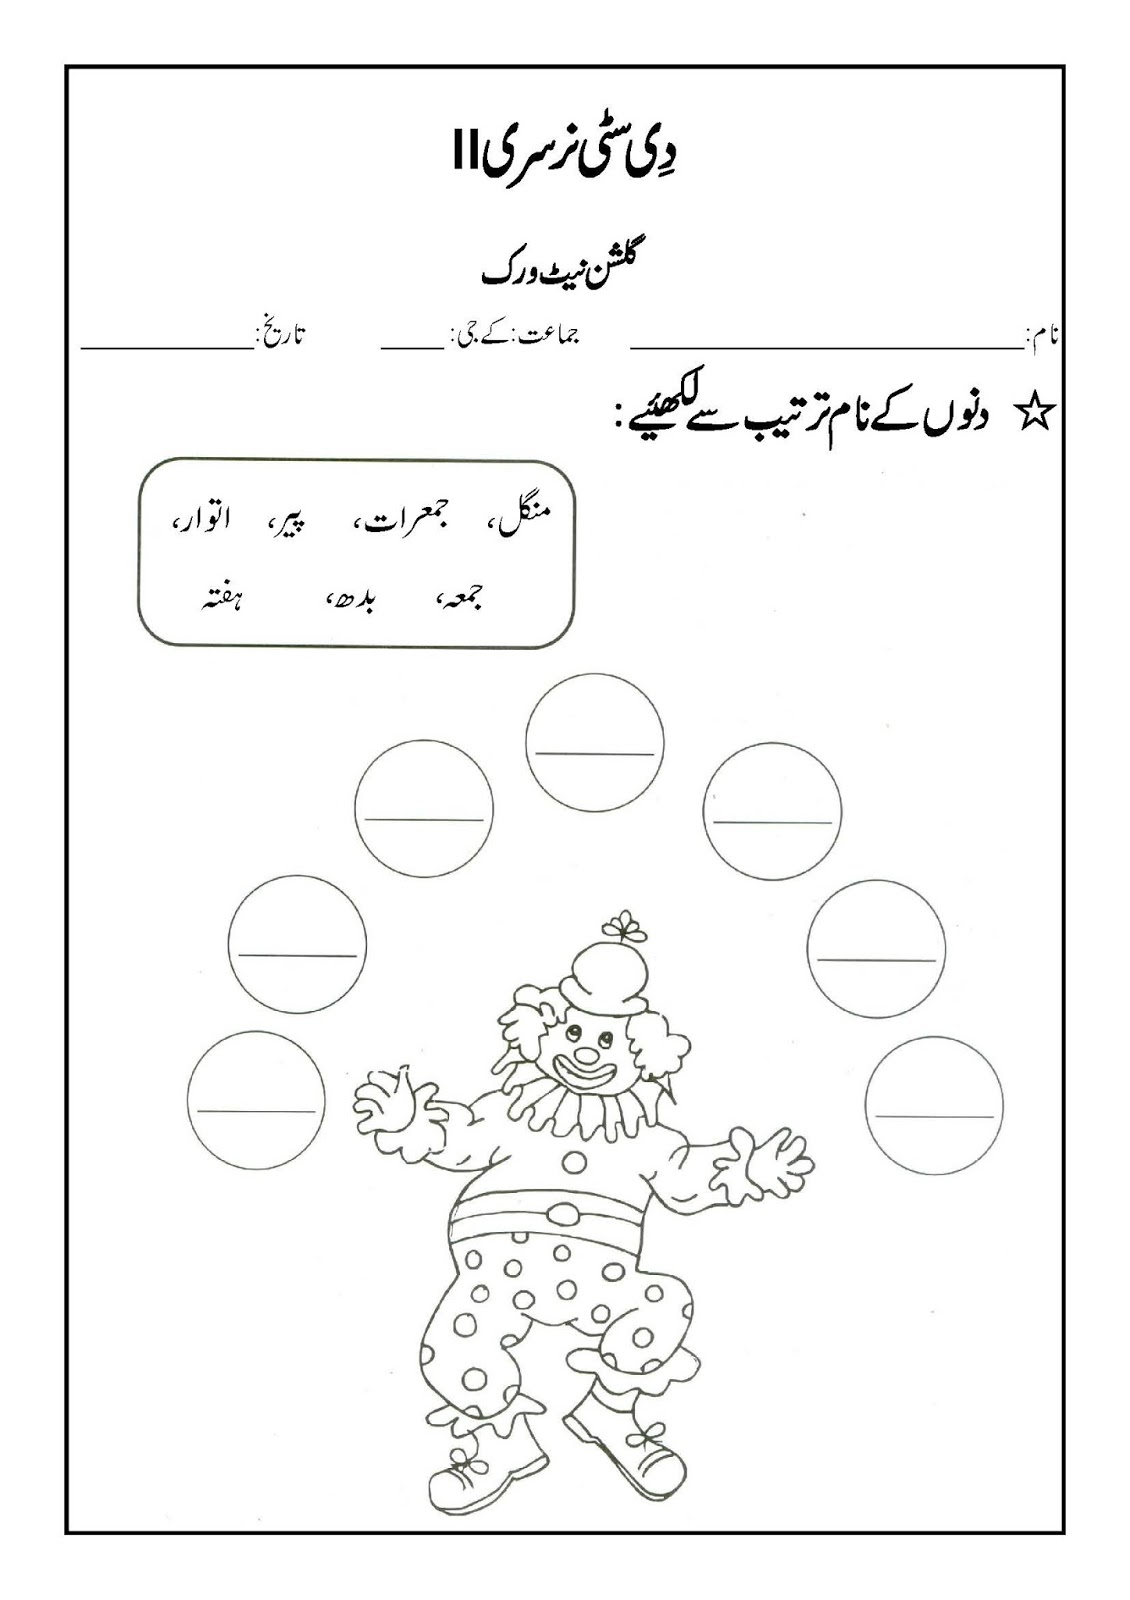 SR Gulshan The City Nursery-II: Urdu Worksheet